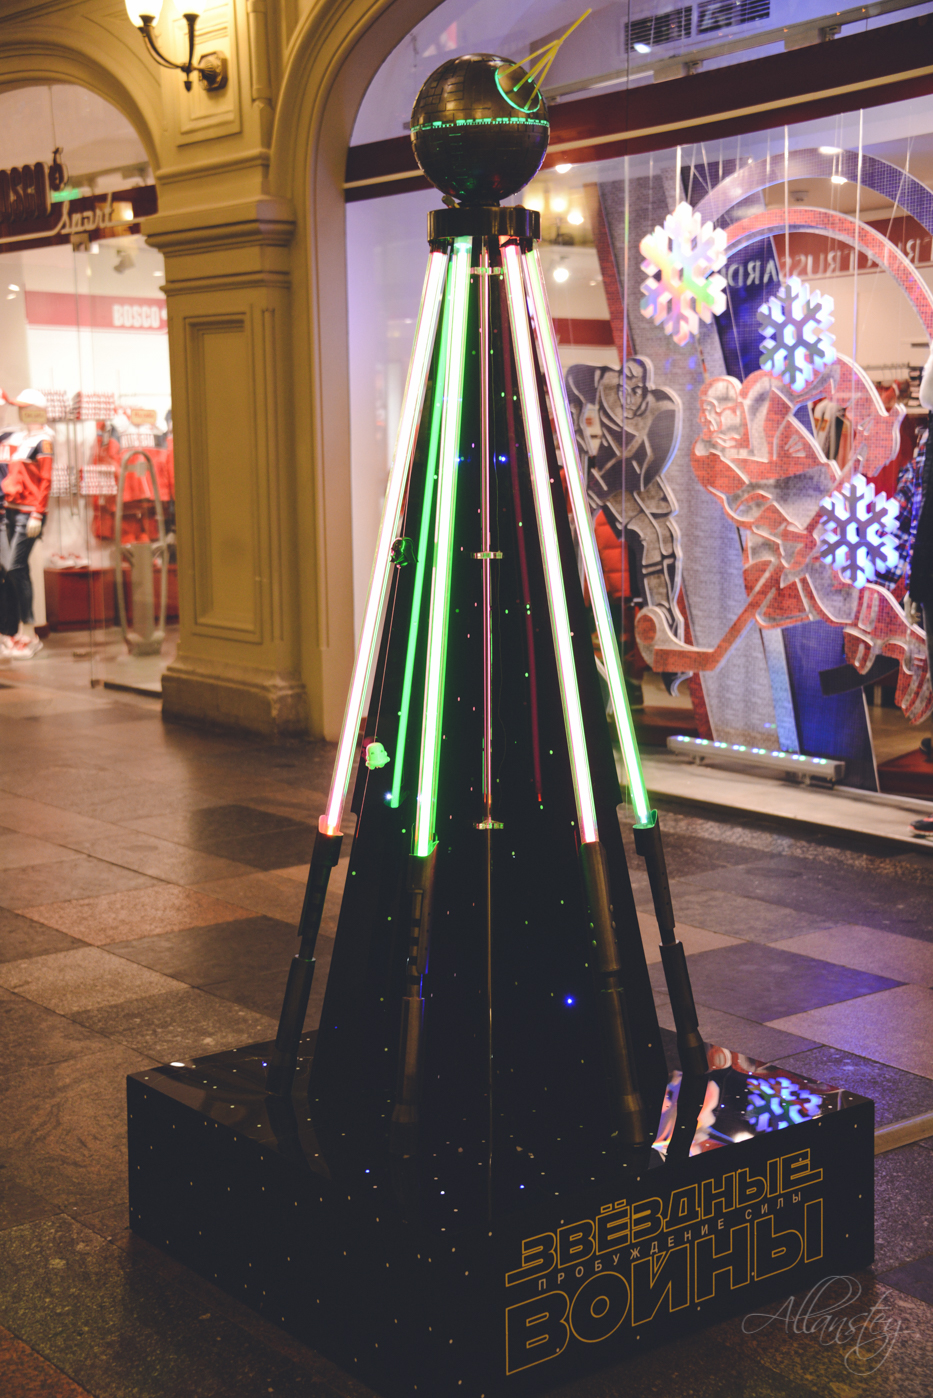 Star wars lightsaber Christmas tree design